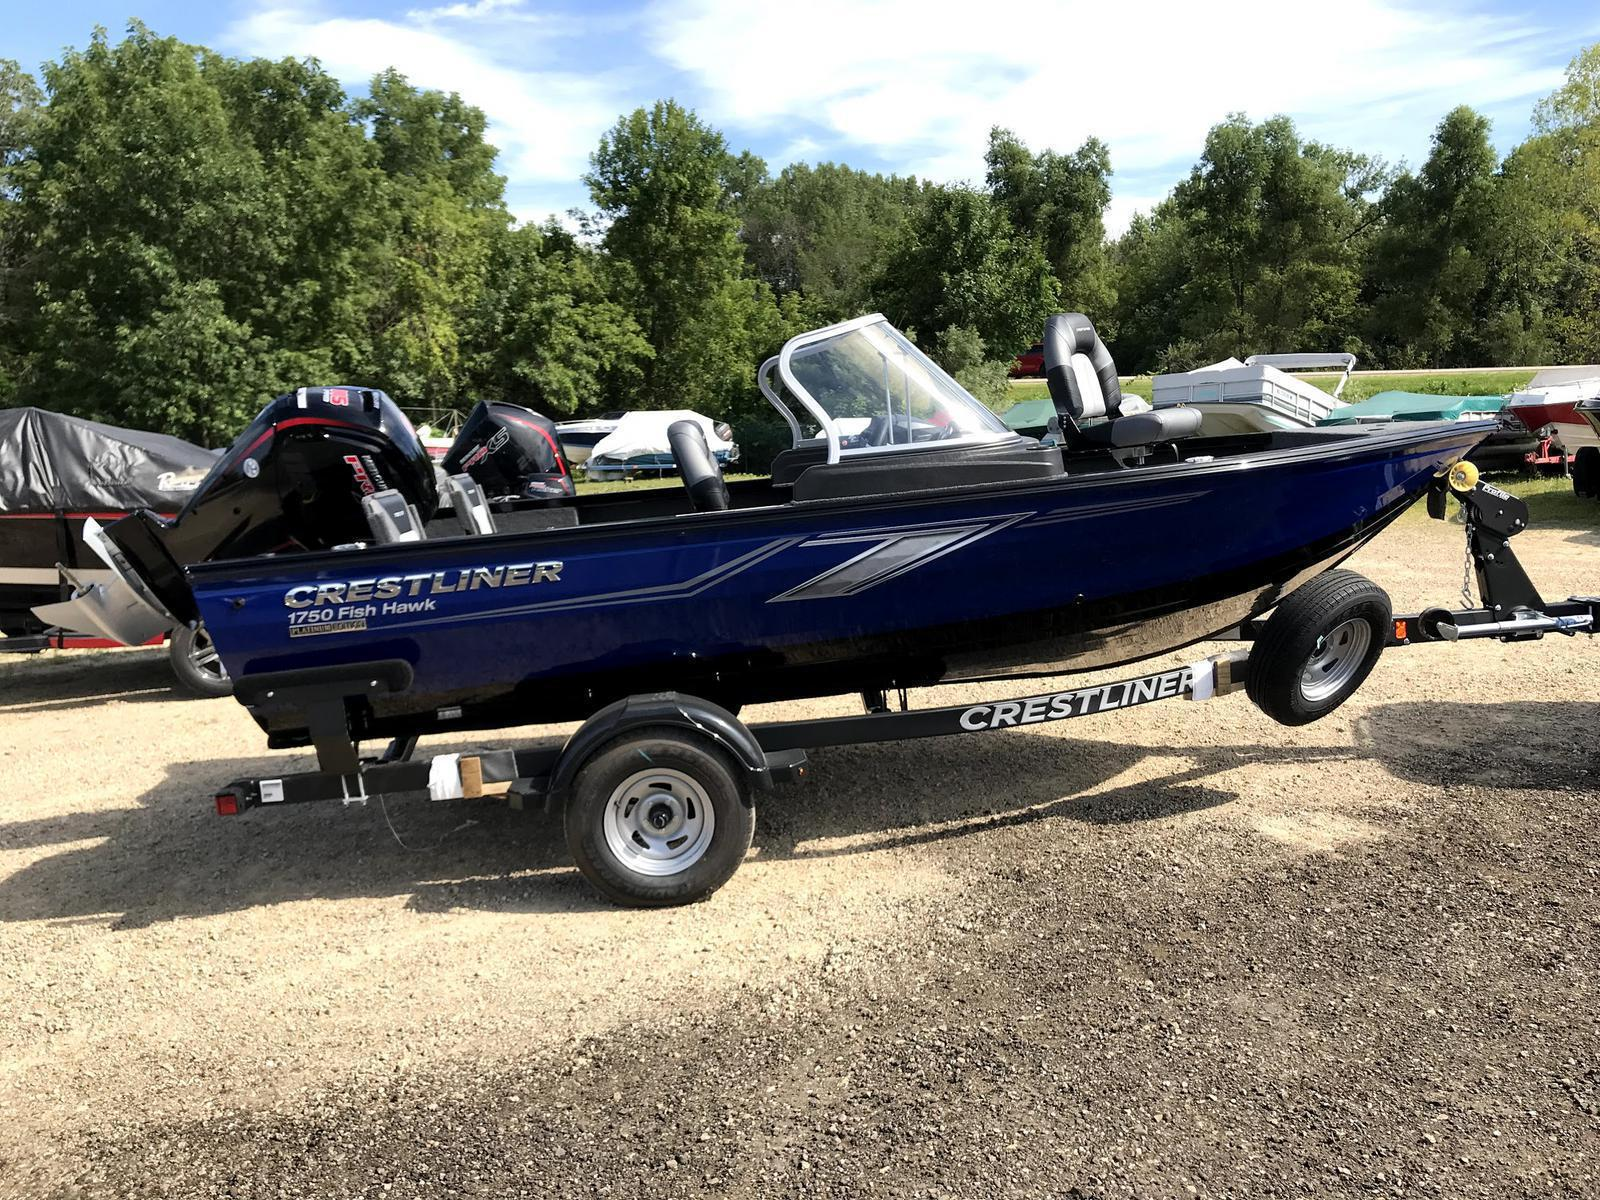 Inventory from Crestliner and Ranger Quam's Marine & Motor